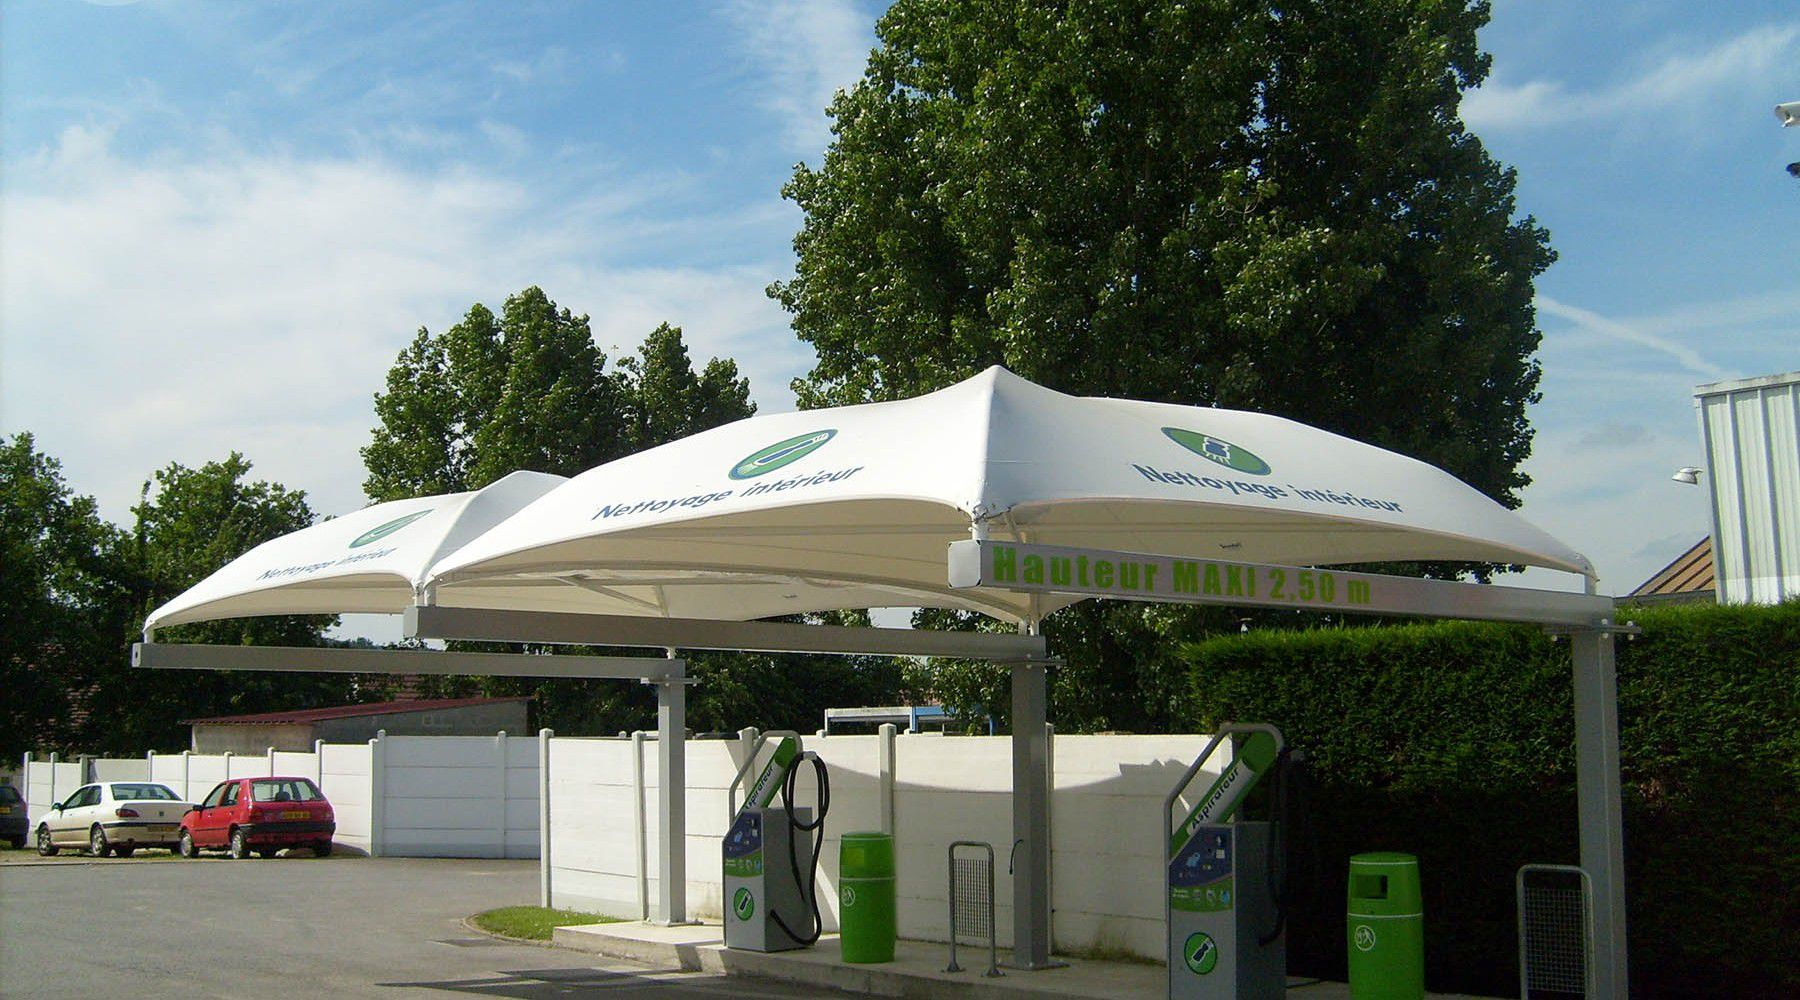 Metal frame supported tensile structure / for shelters / with PVC membrane / for public spaces - CAR WASH & Metal frame supported tensile structure / for shelters / with PVC ...